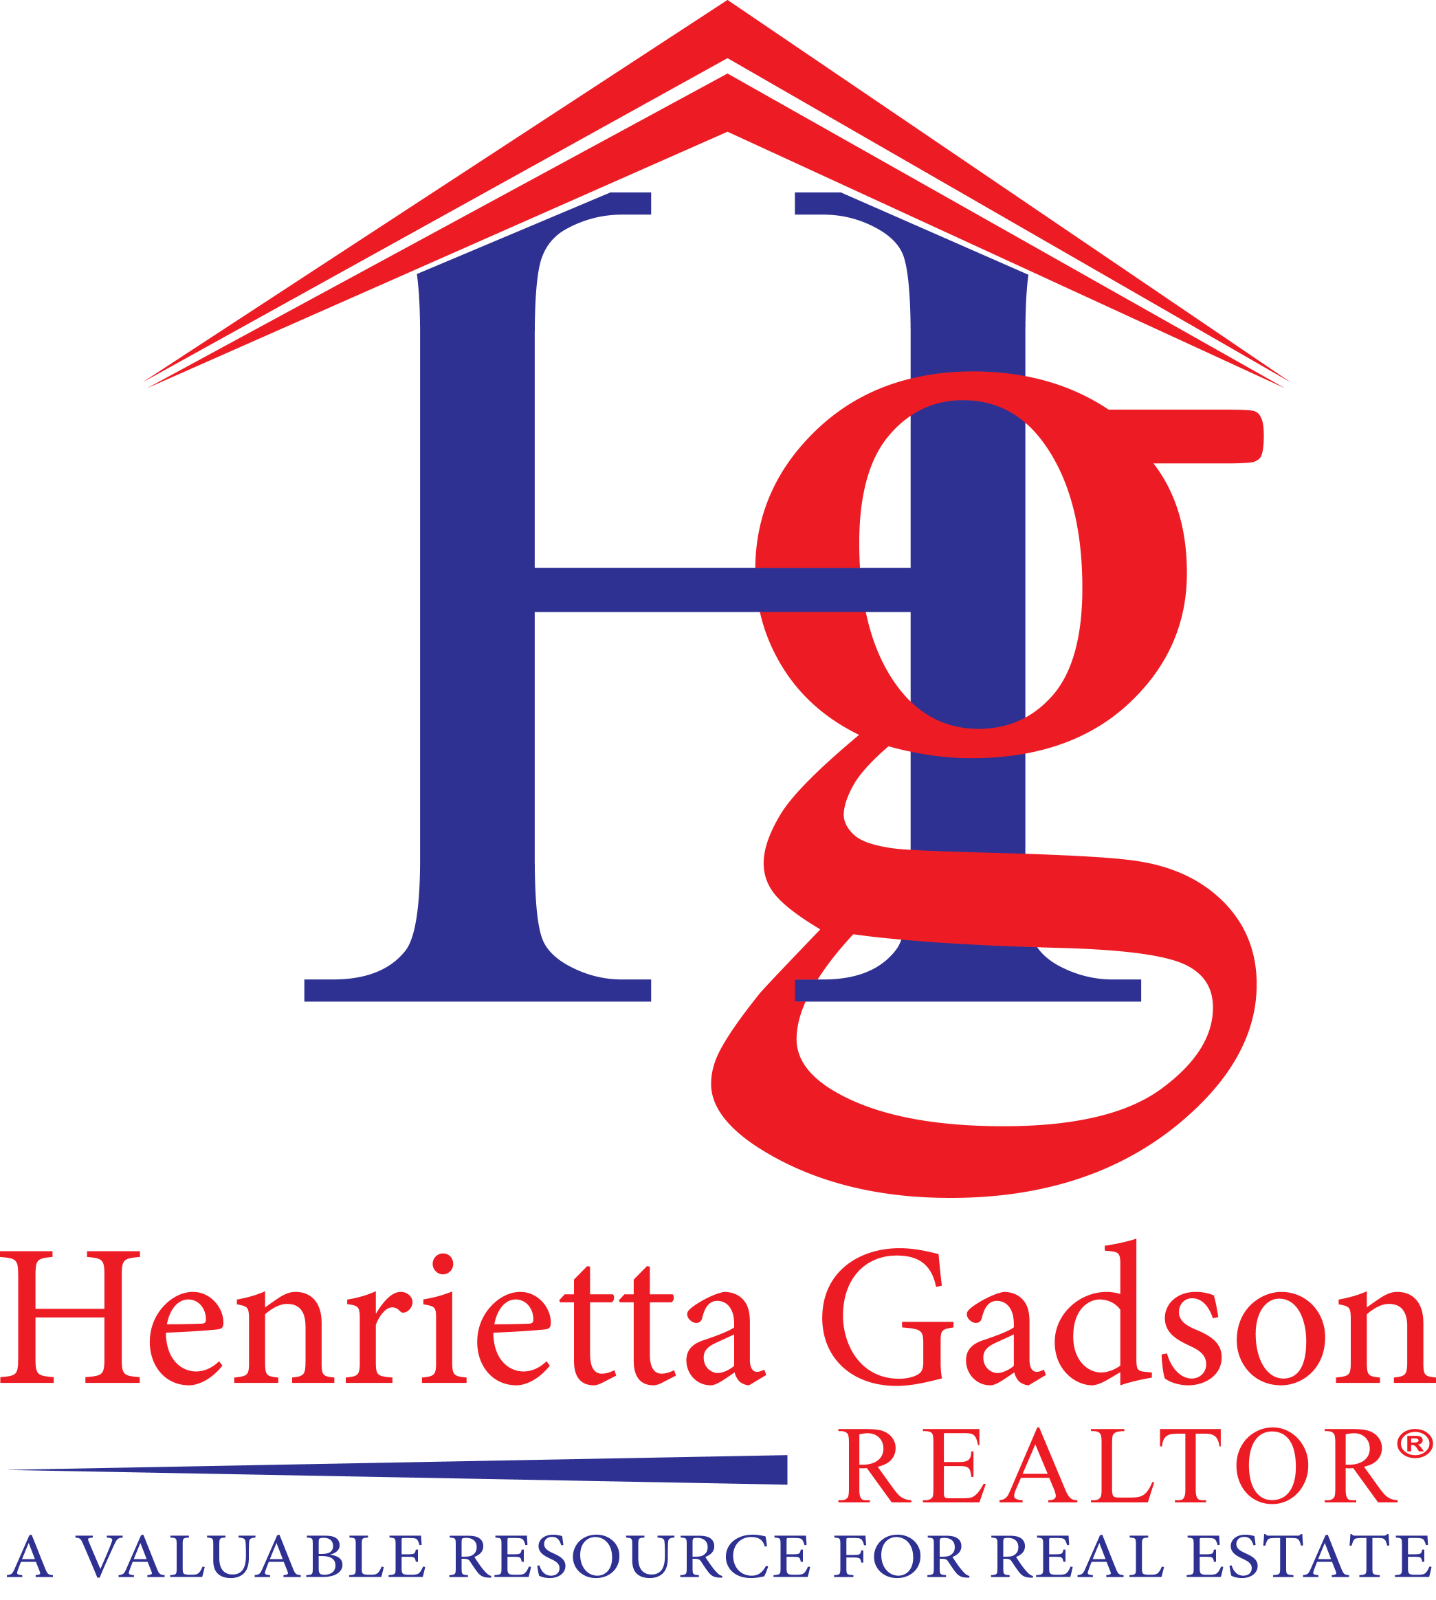 Buy and Sell Real Estate with a Realtor Who is Dedicated to Family and Community